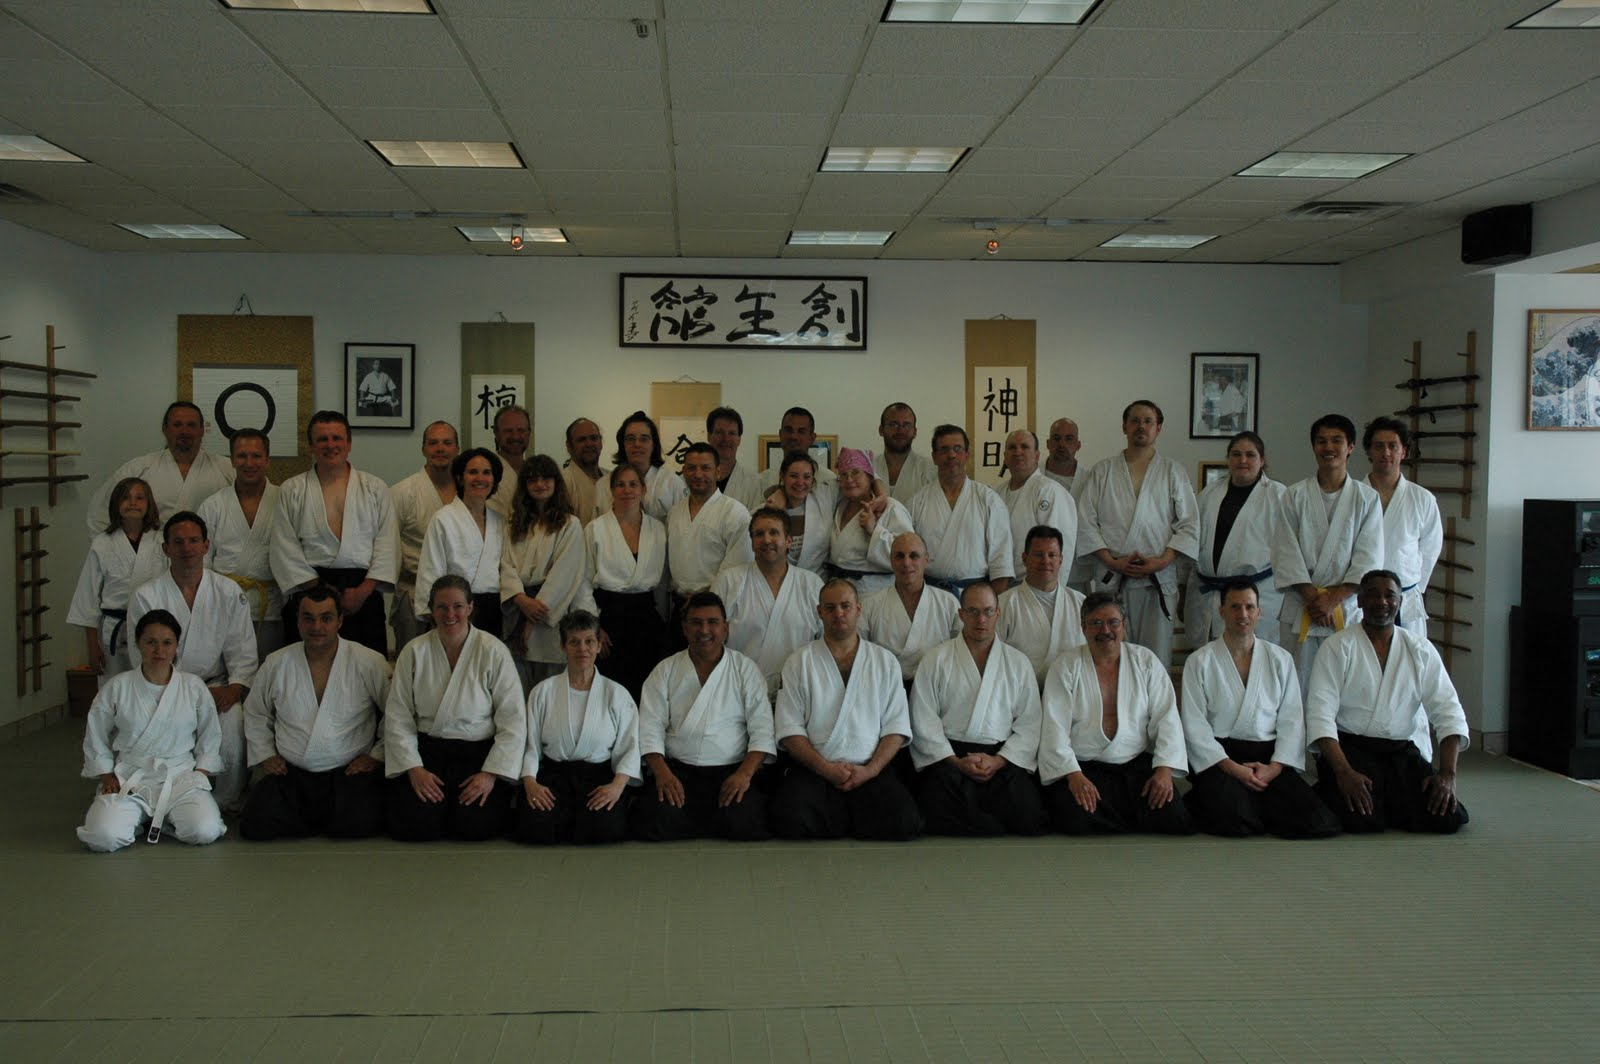 "Sosei Aikido Kyokai nfp, A Center for the Martial Arts – Soseikan Dojo welcomed back Ed Germanov Sensei (Godan), Chief Instructor of Tendokan International to our Seminar Series, ""In the Foot Steps of Shihan"". This is a seminar series by the Students of Fumio Toyoda Shihan, held the weekend of Fri. June 4th, through Sun. June 6th, 2010."